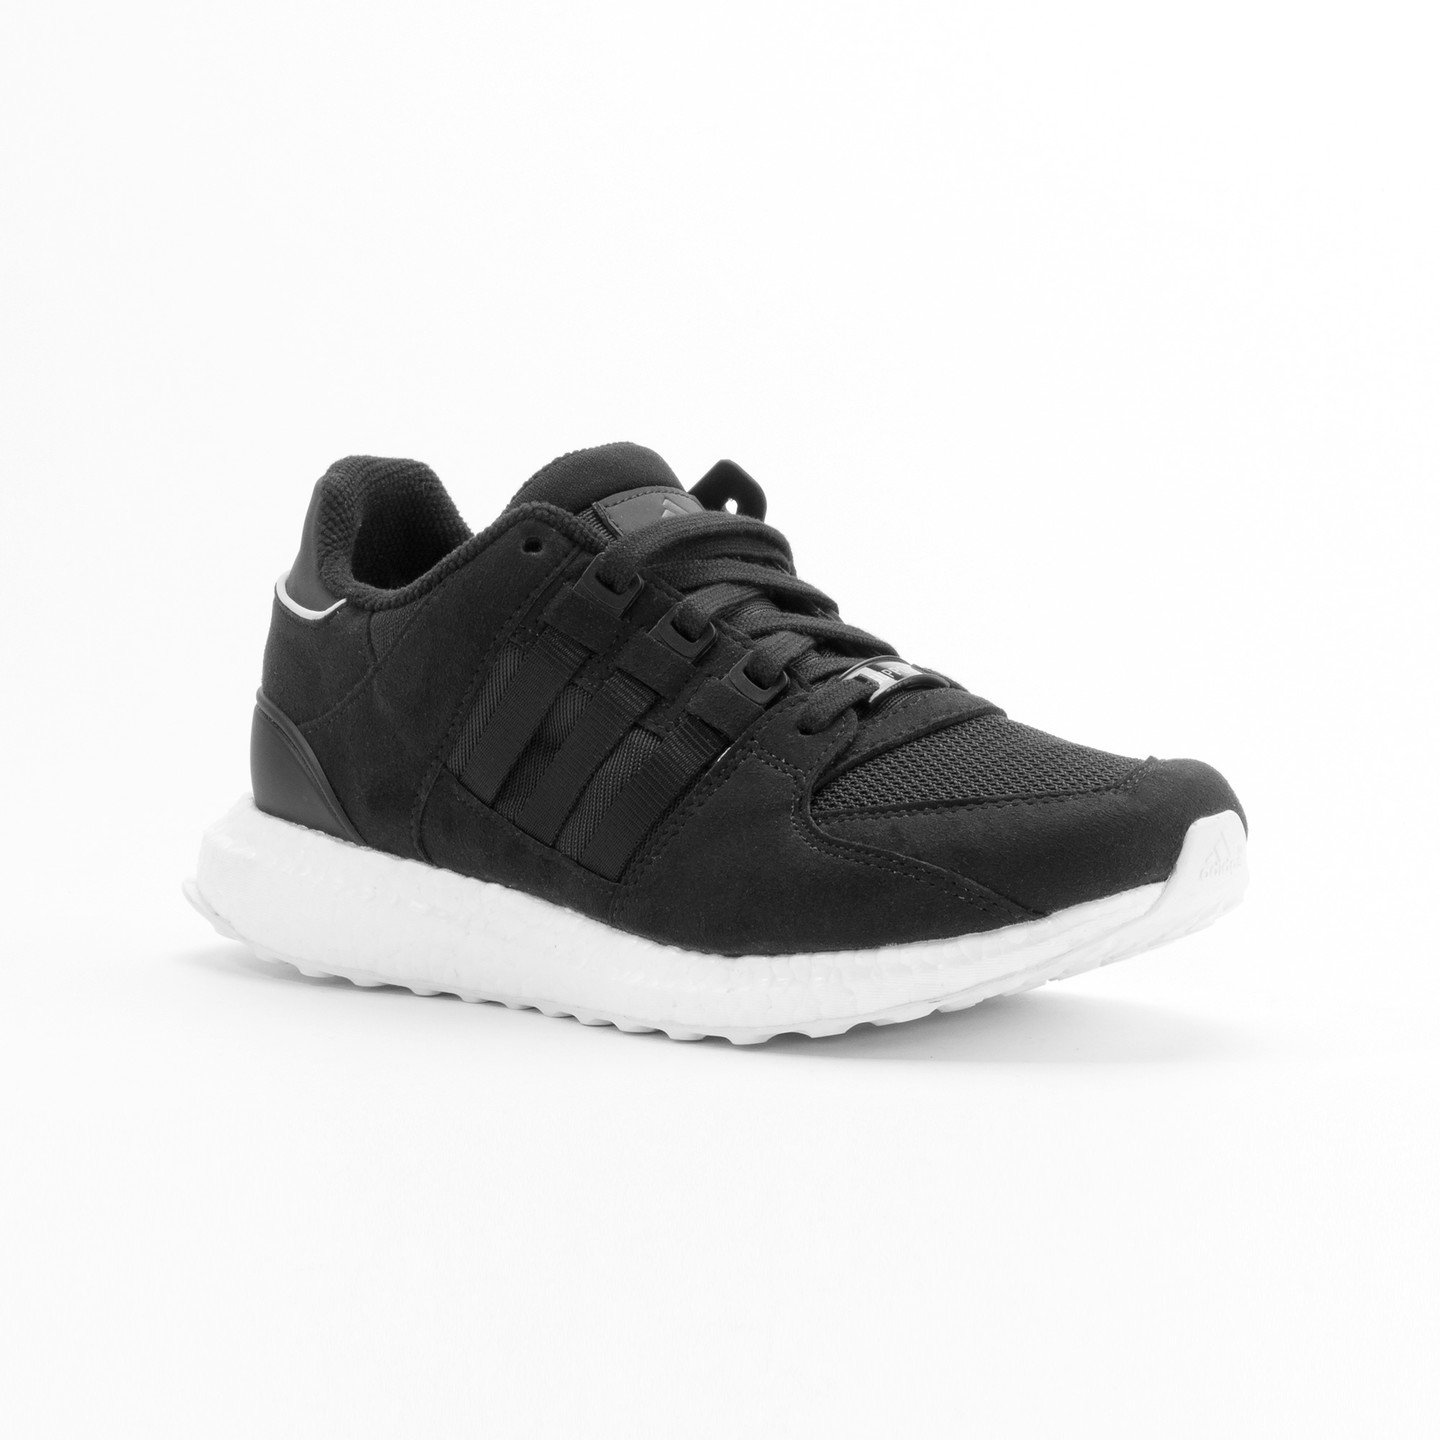 Adidas Equipment Support 93/16 Core Black / Running White BY9148-43.33